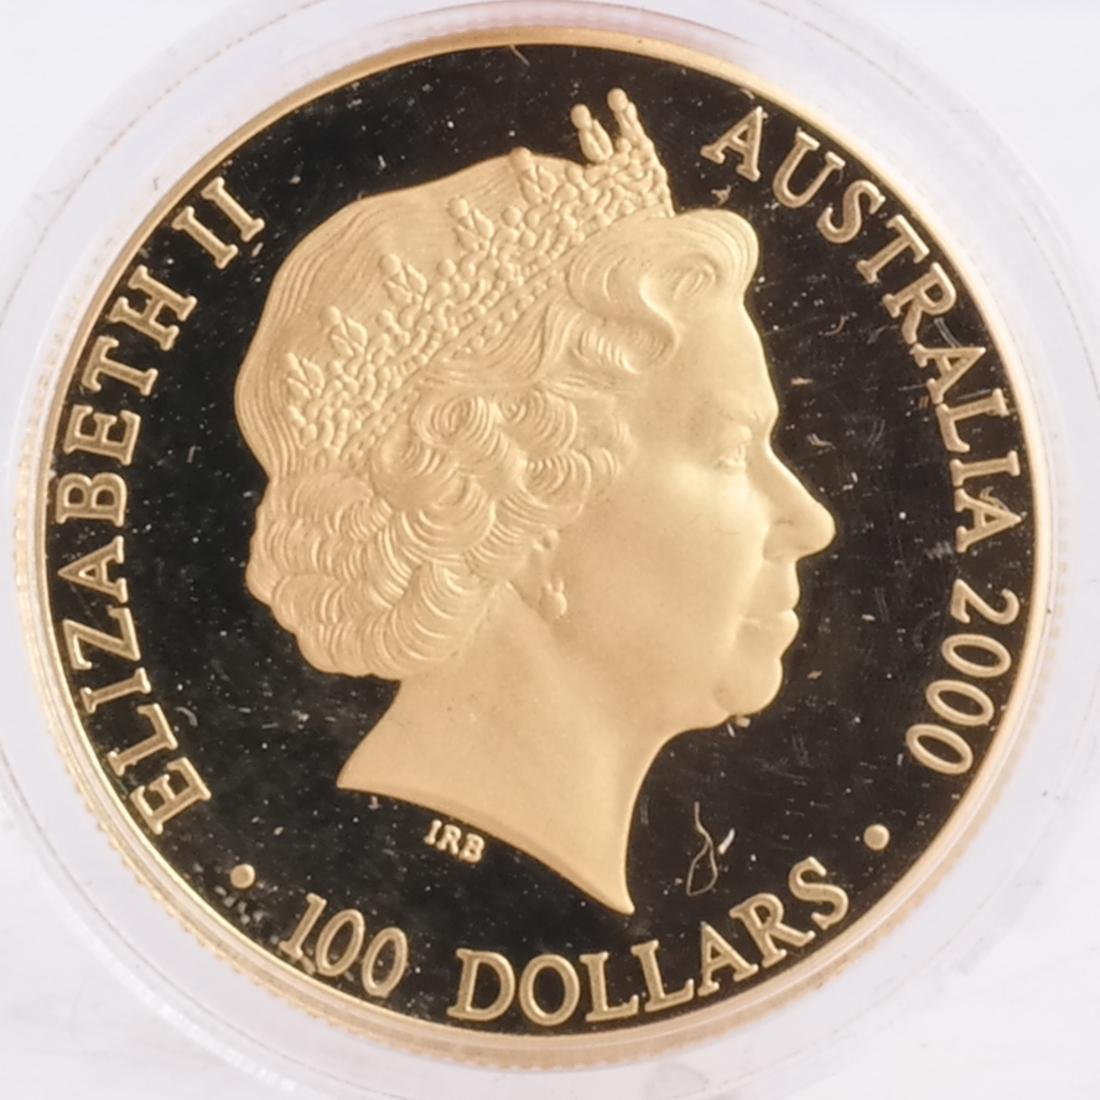 1998 1/2 Sovereign, Australian $100 - 3